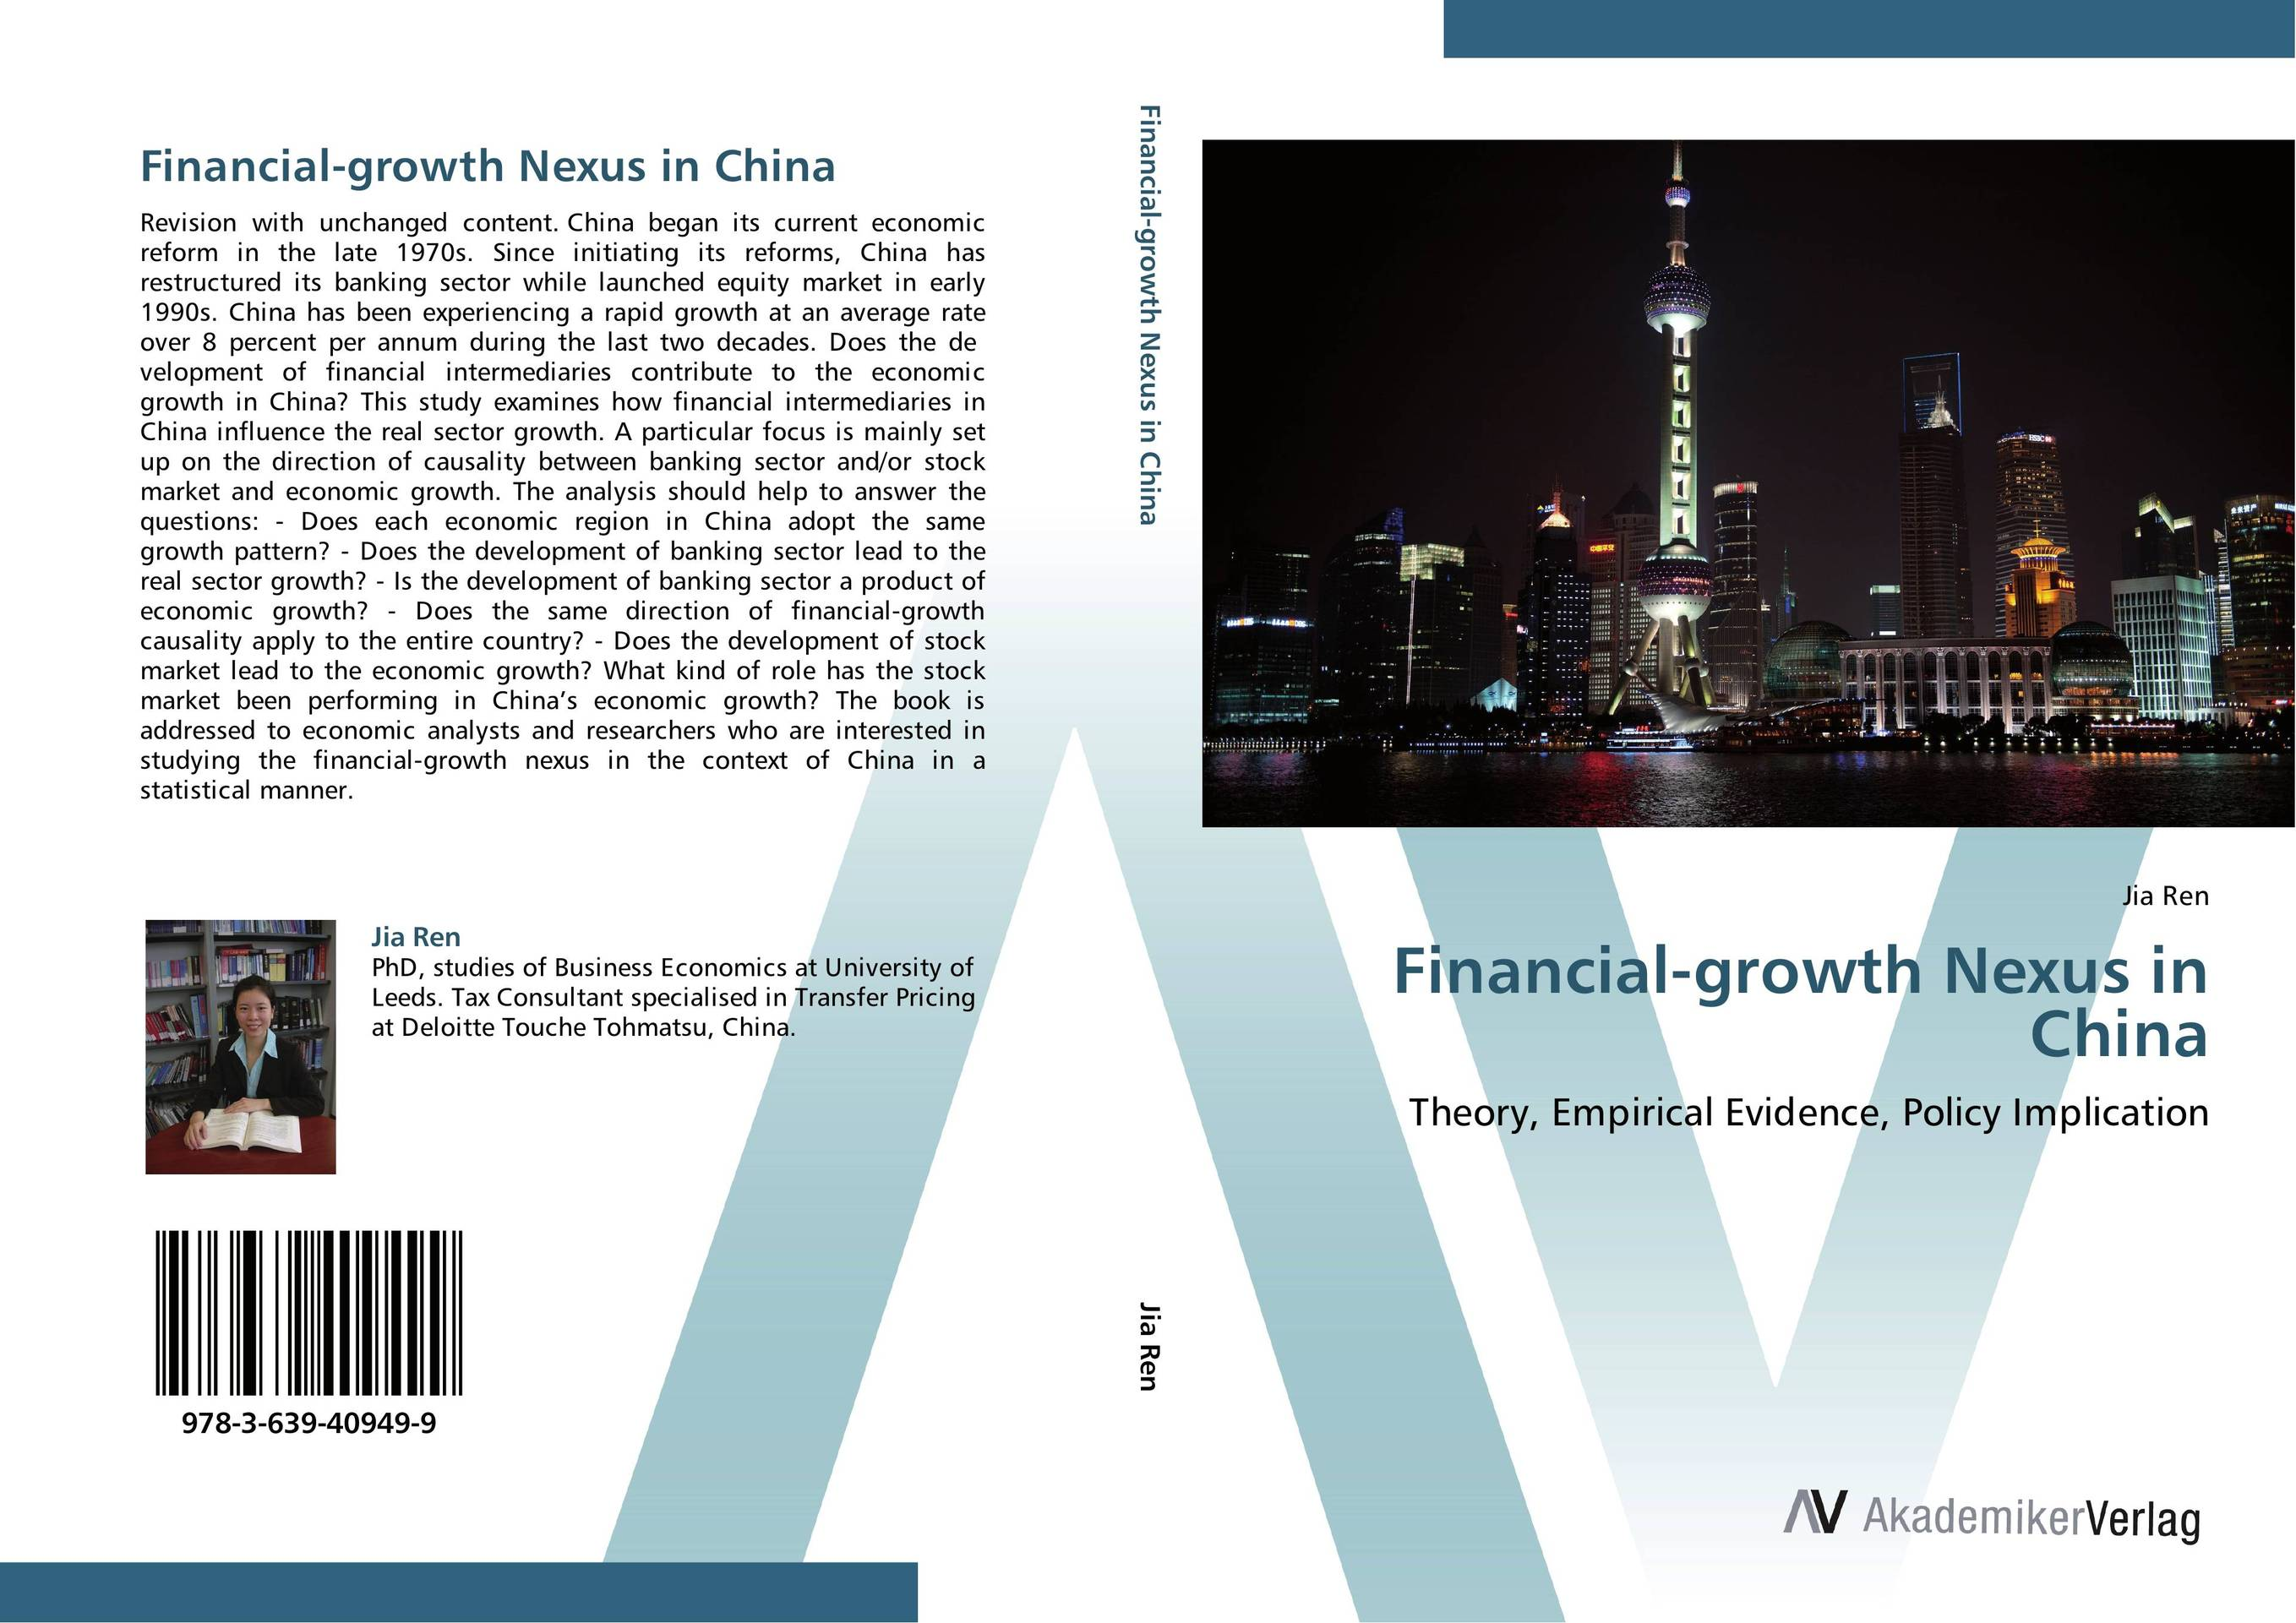 Financial-growth Nexus in China impact of stock market performance indices on economic growth